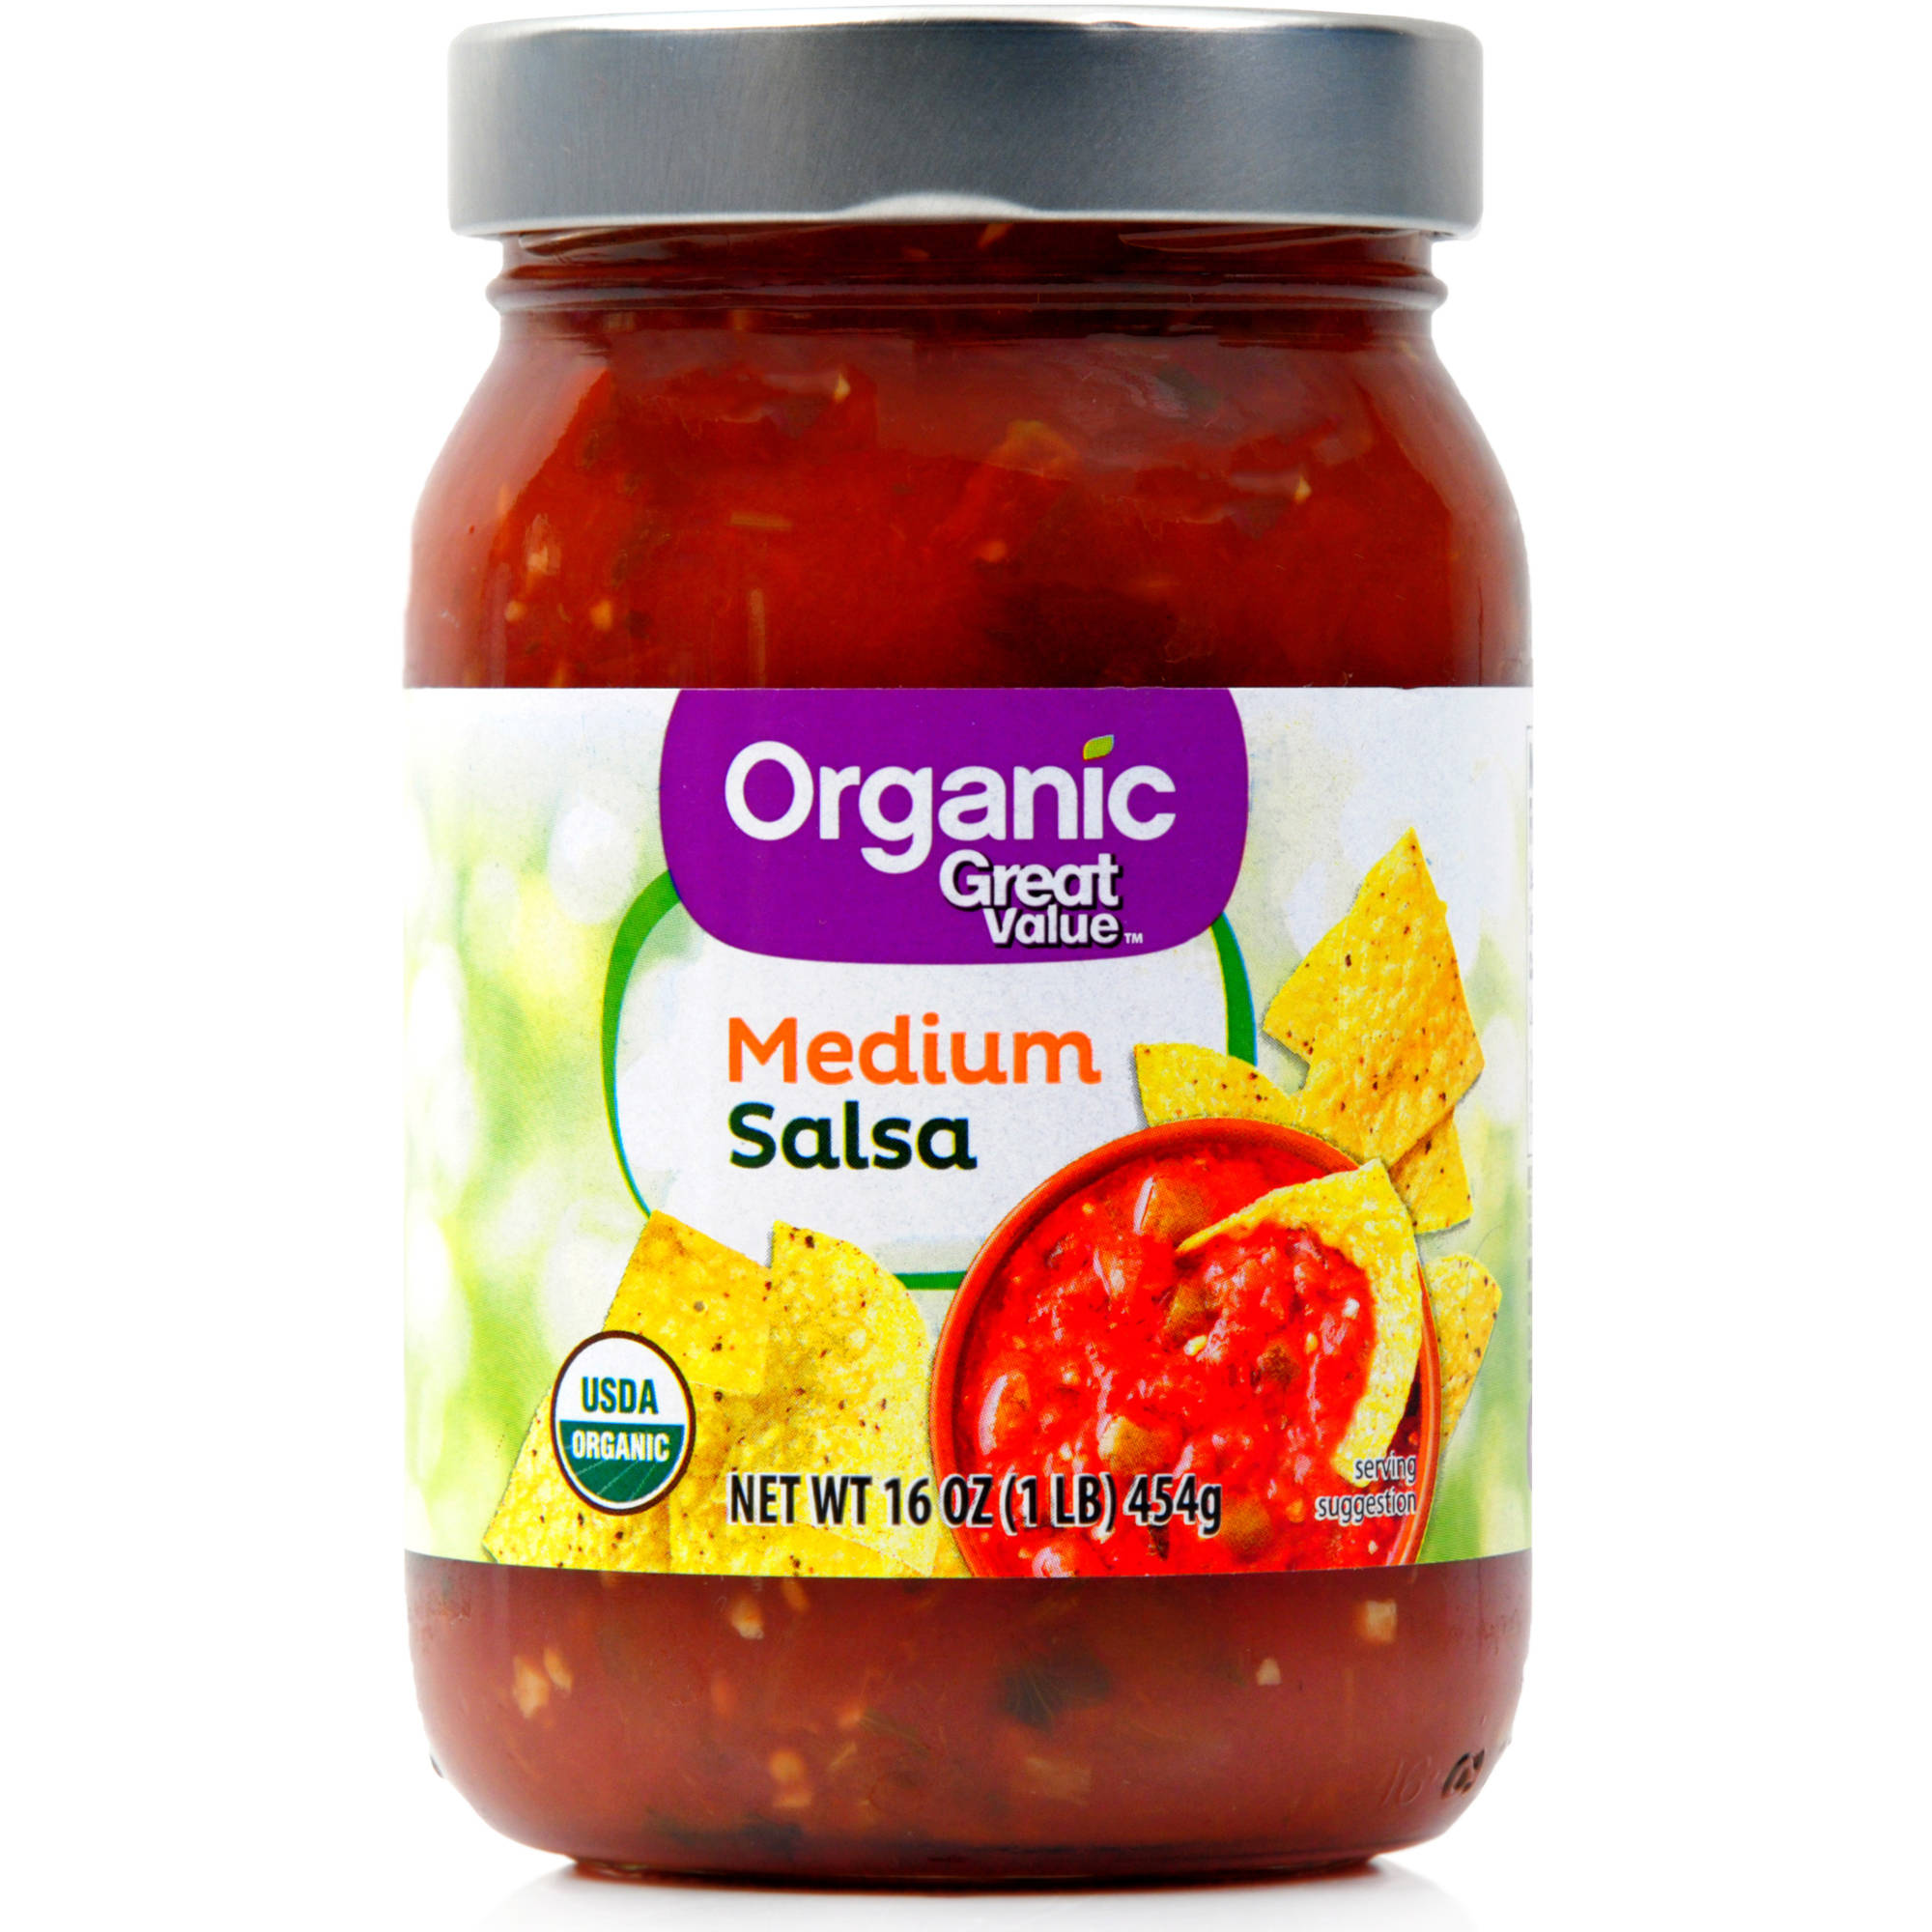 Great Value Organic Salsa Medium